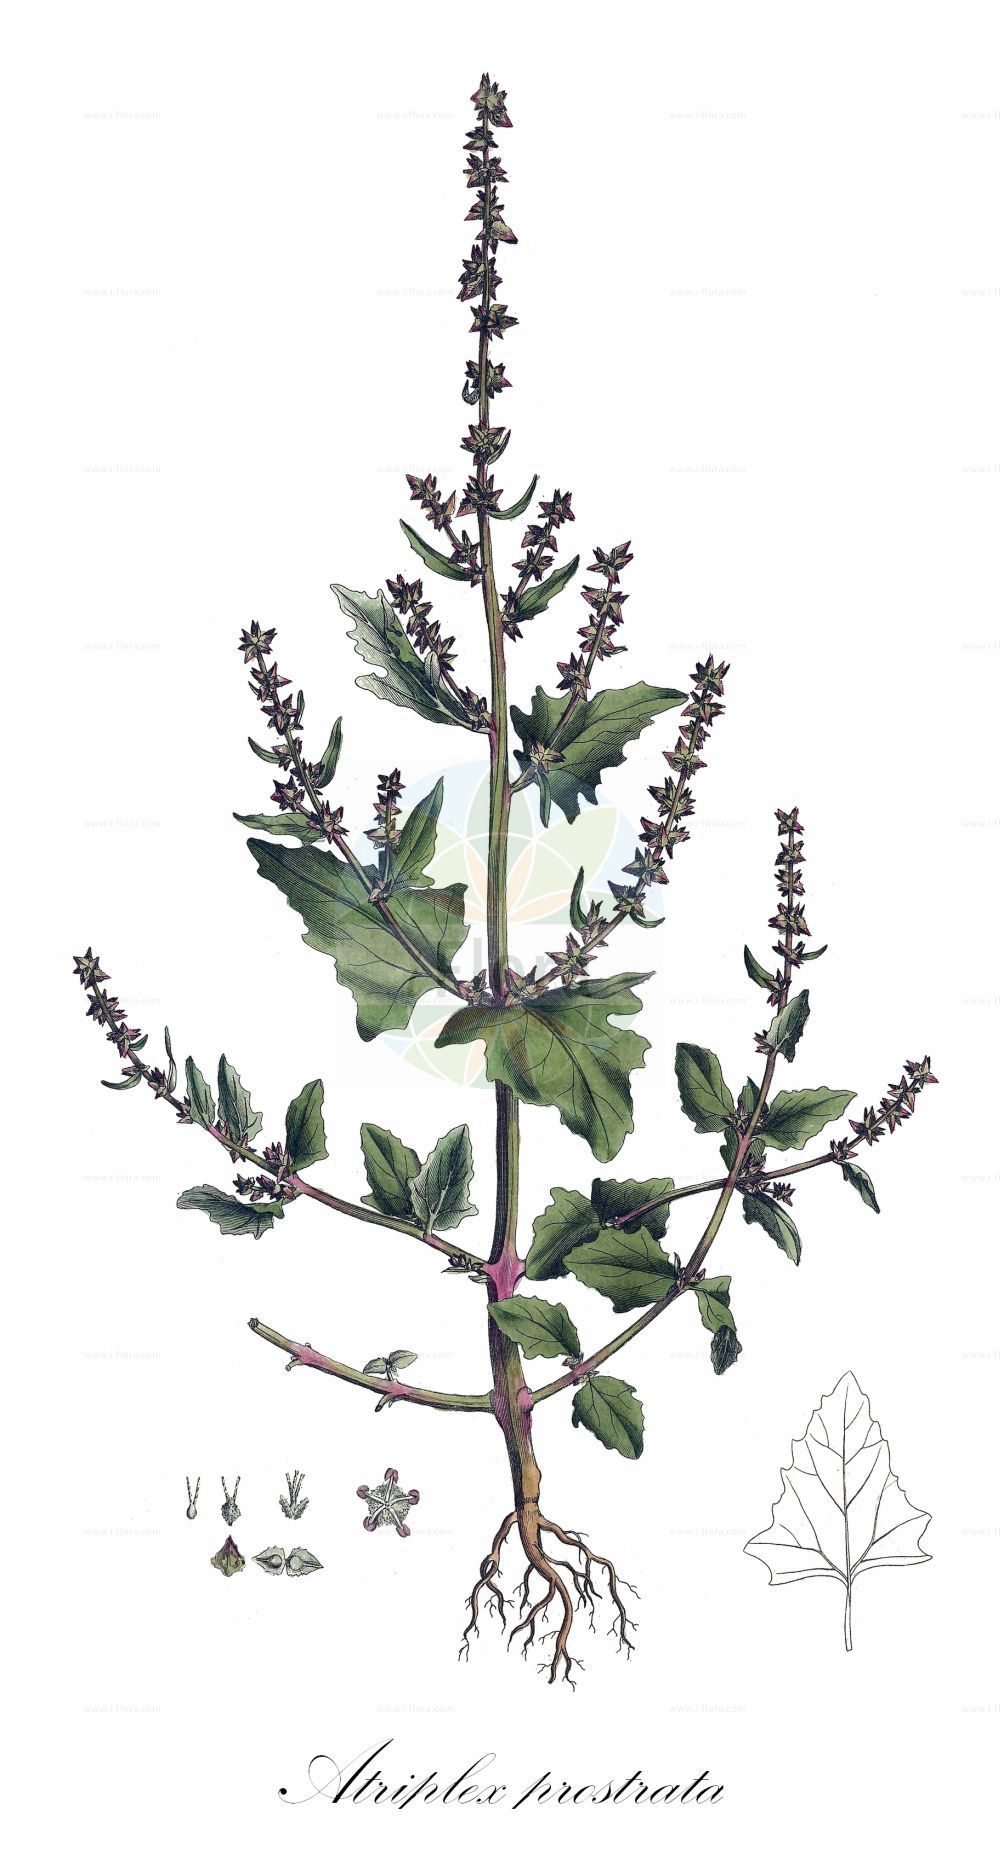 Historische Abbildung von Atriplex prostrata (Spiess-Melde - Spear-leaved Orache). Das Bild zeigt Blatt, Bluete, Frucht und Same. ---- Historical Drawing of Atriplex prostrata (Spiess-Melde - Spear-leaved Orache).The image is showing leaf, flower, fruit and seed.(Atriplex prostrata,Spiess-Melde,Spear-leaved Orache,Atriplex deltoidea,Atriplex latifolia,Atriplex oppositifolia,Atriplex platysepala,Atriplex polonica,Atriplex triangularis,Spiessblaettrige Melde,Hastate Orache,Halberd-leaf Orache,Thin-leaved Orache,Mountain Spinach,Triangle Orache,Wild Orache,Atriplex,Melde,Saltbush,Amaranthaceae,Fuchsschwanzgewaechse,Pigweed family,Blatt,Bluete,Frucht,Same,leaf,flower,fruit,seed,Curtis (1777-1798))